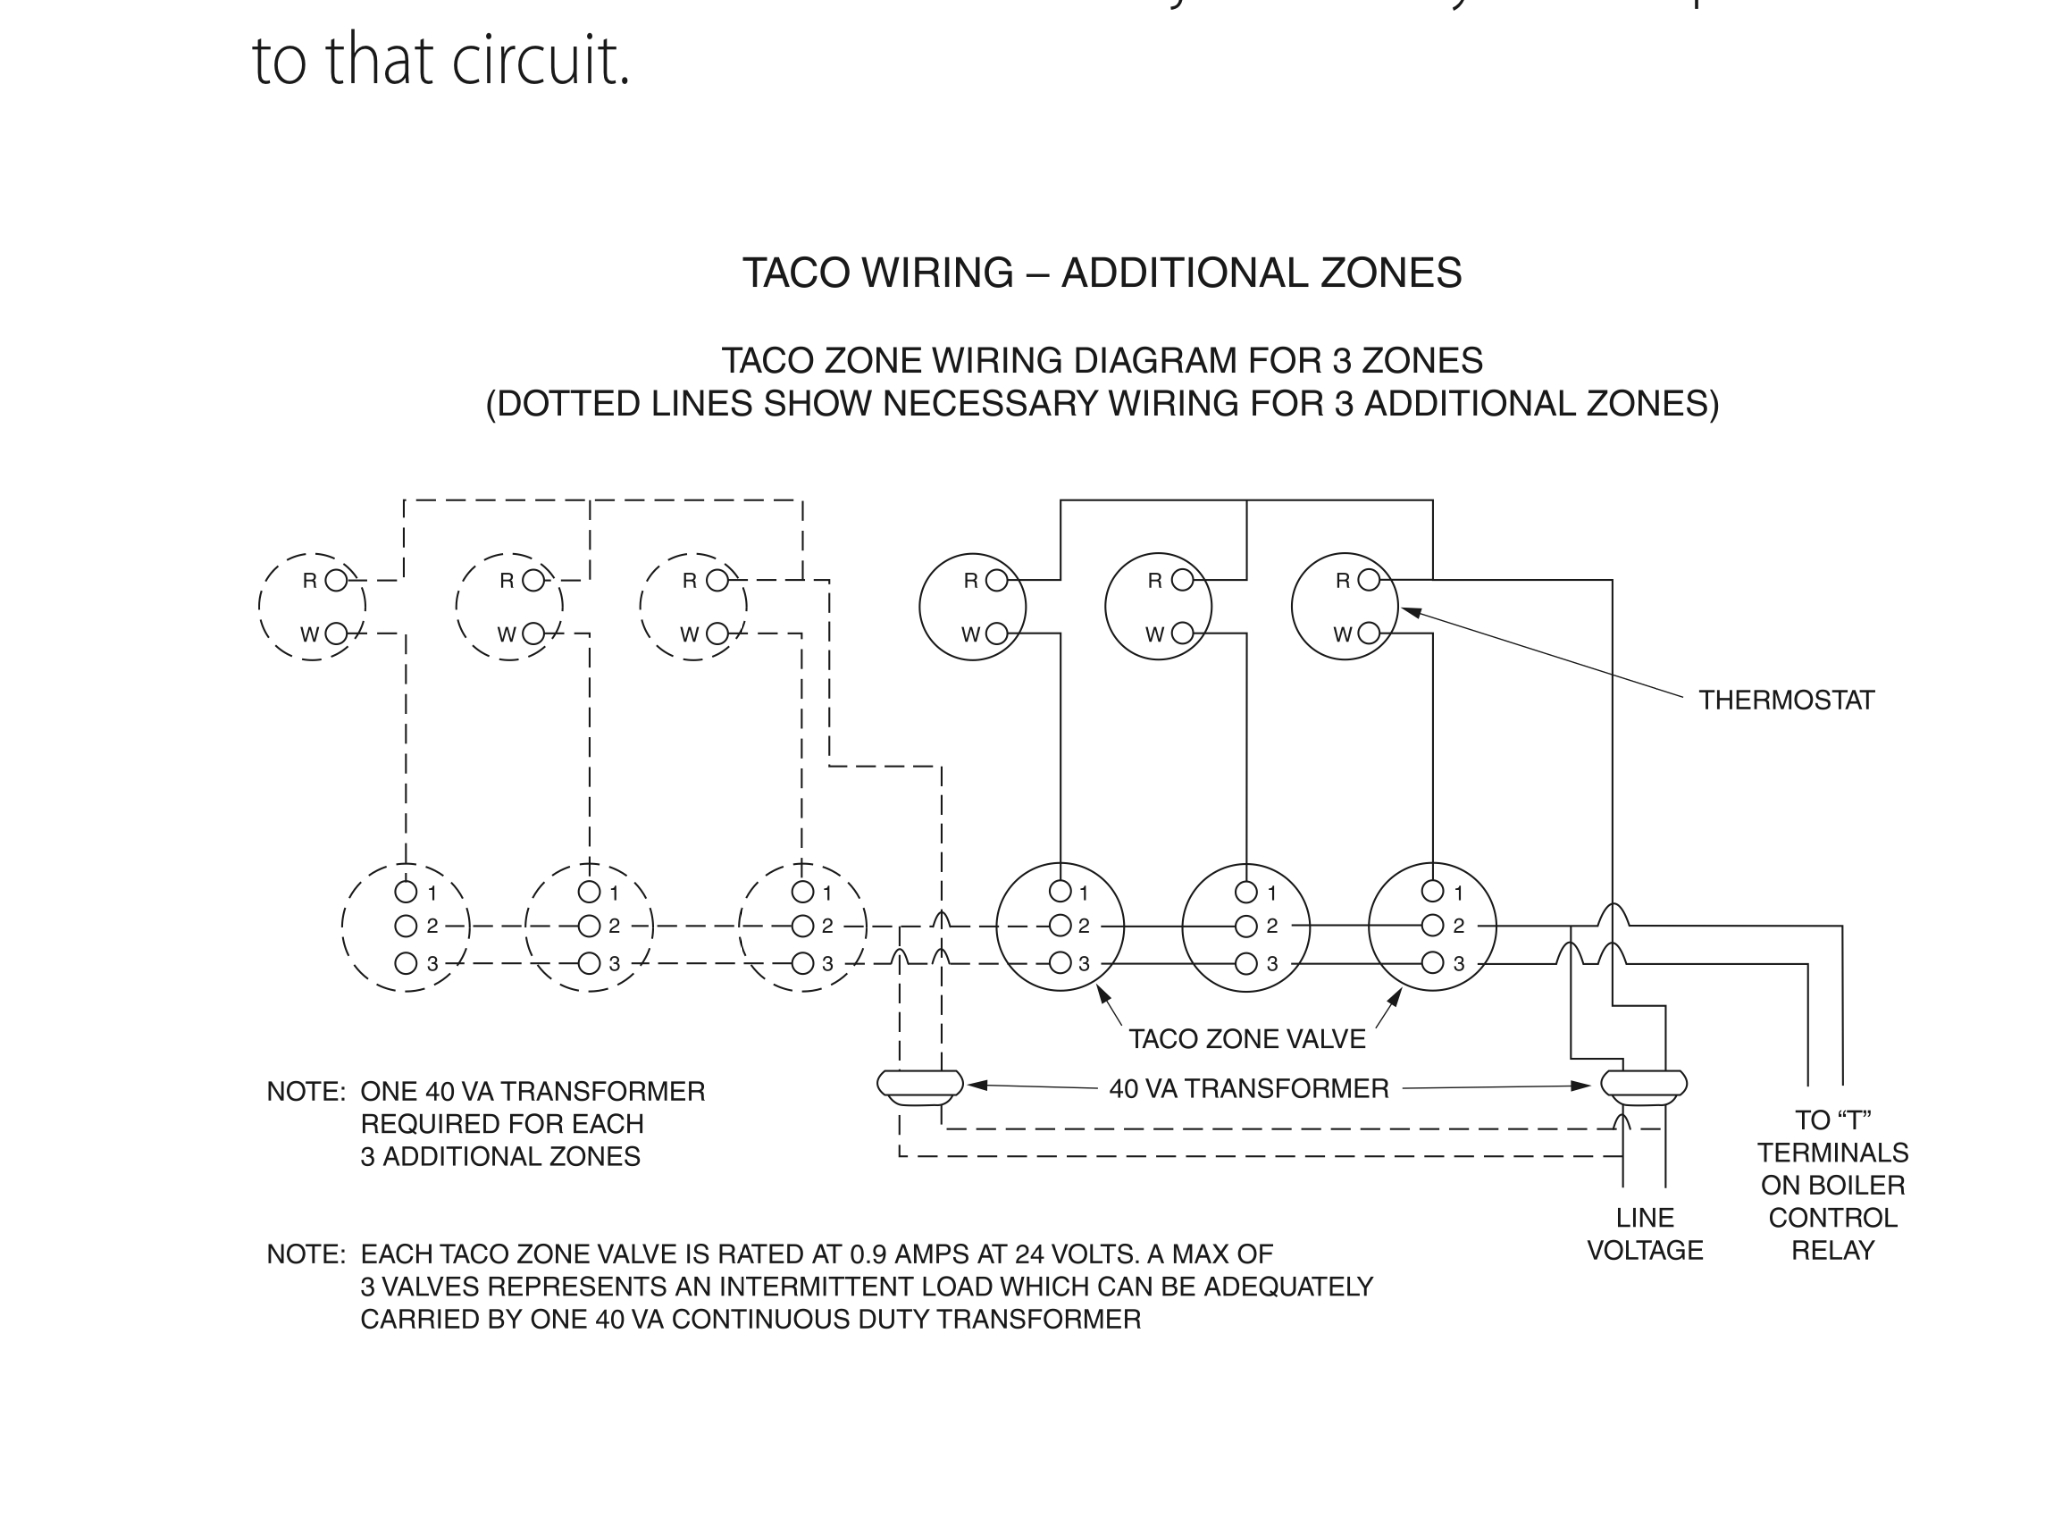 taco 571 zone valve wiring diagram double bubble 2 gallery sample